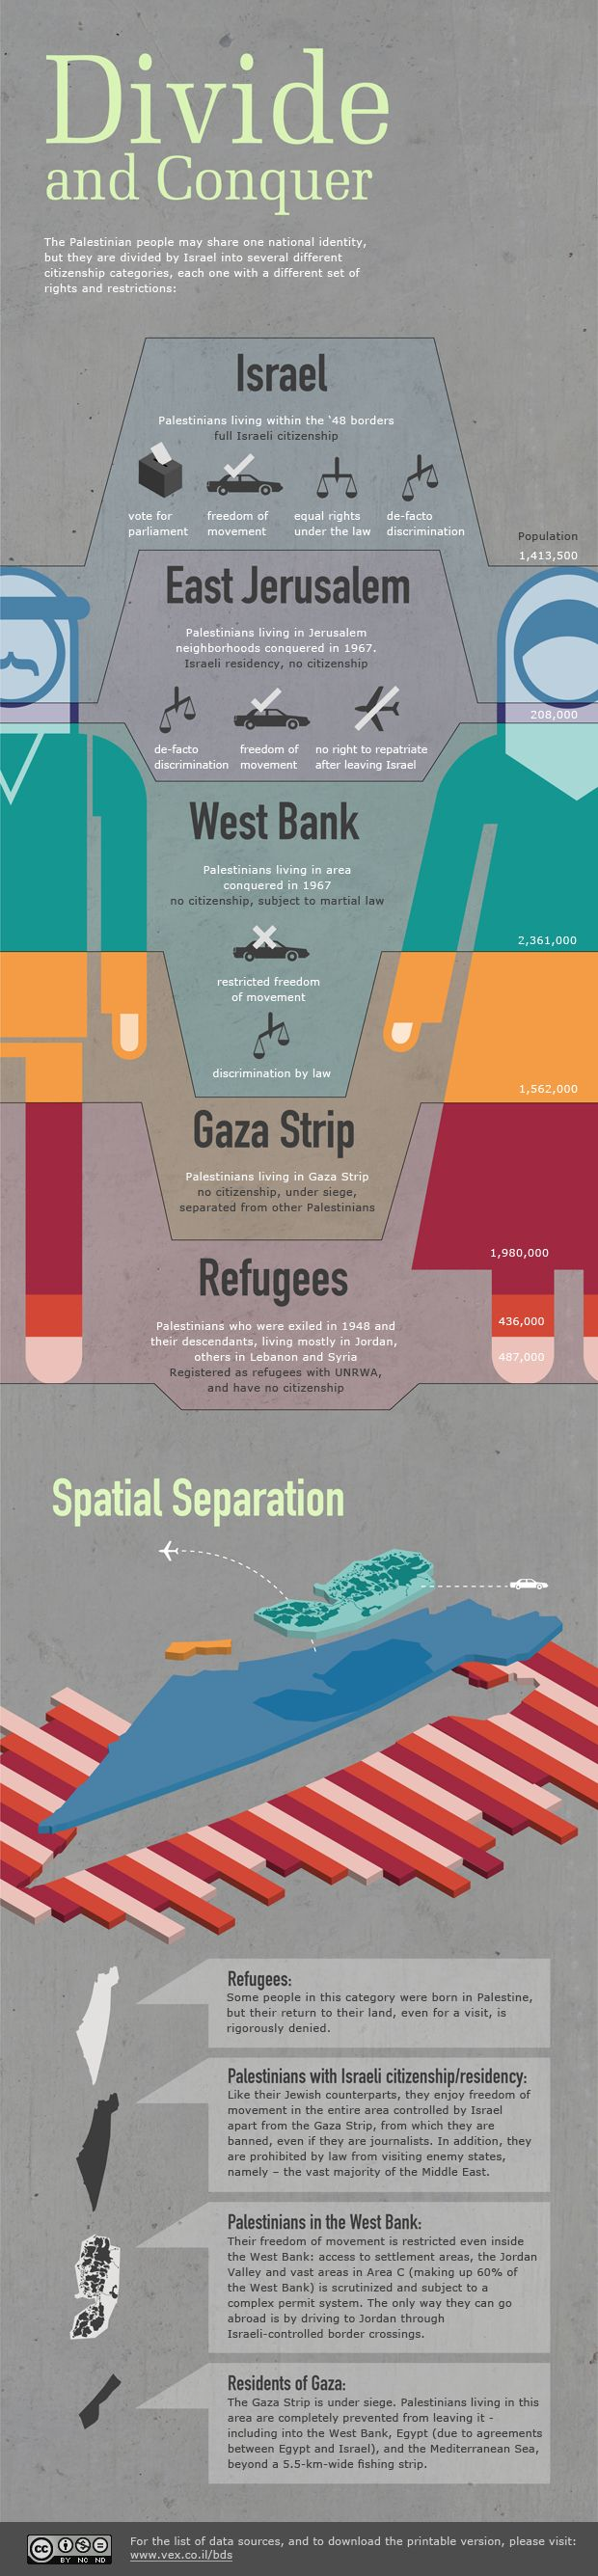 Divide and Conquer  Palestinians living under Israel